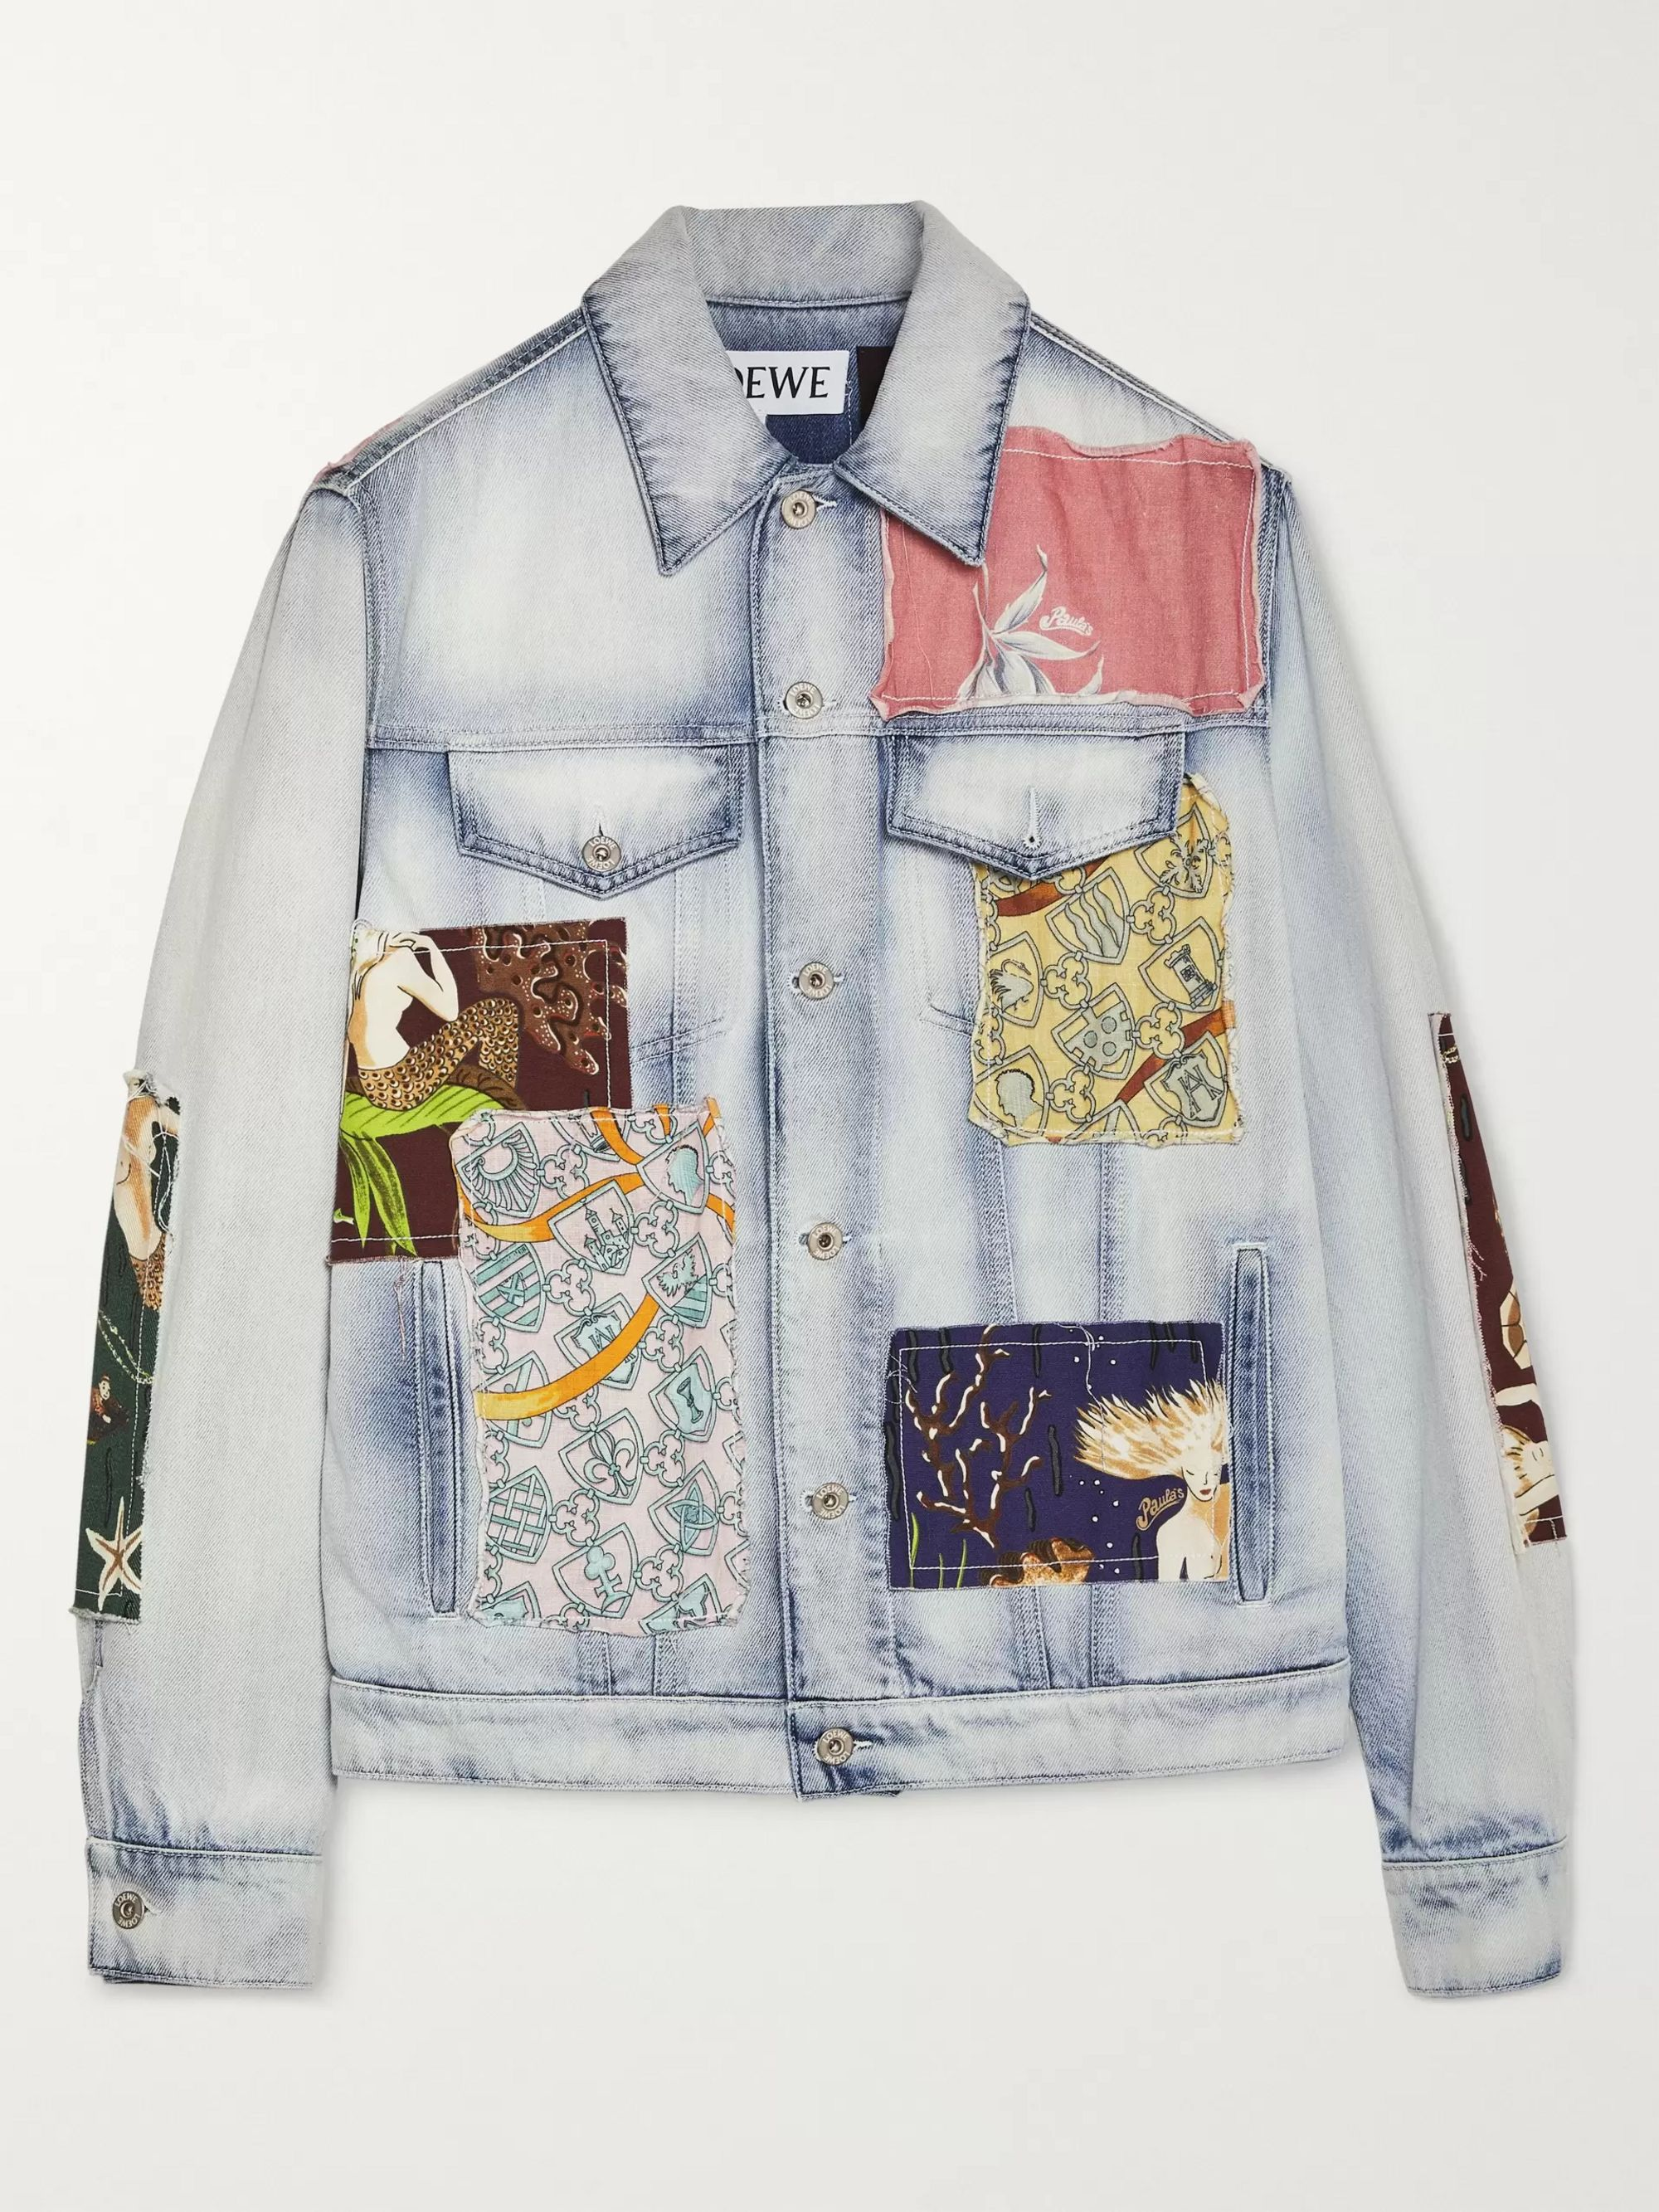 Patchwork denim jacket | Upcycled